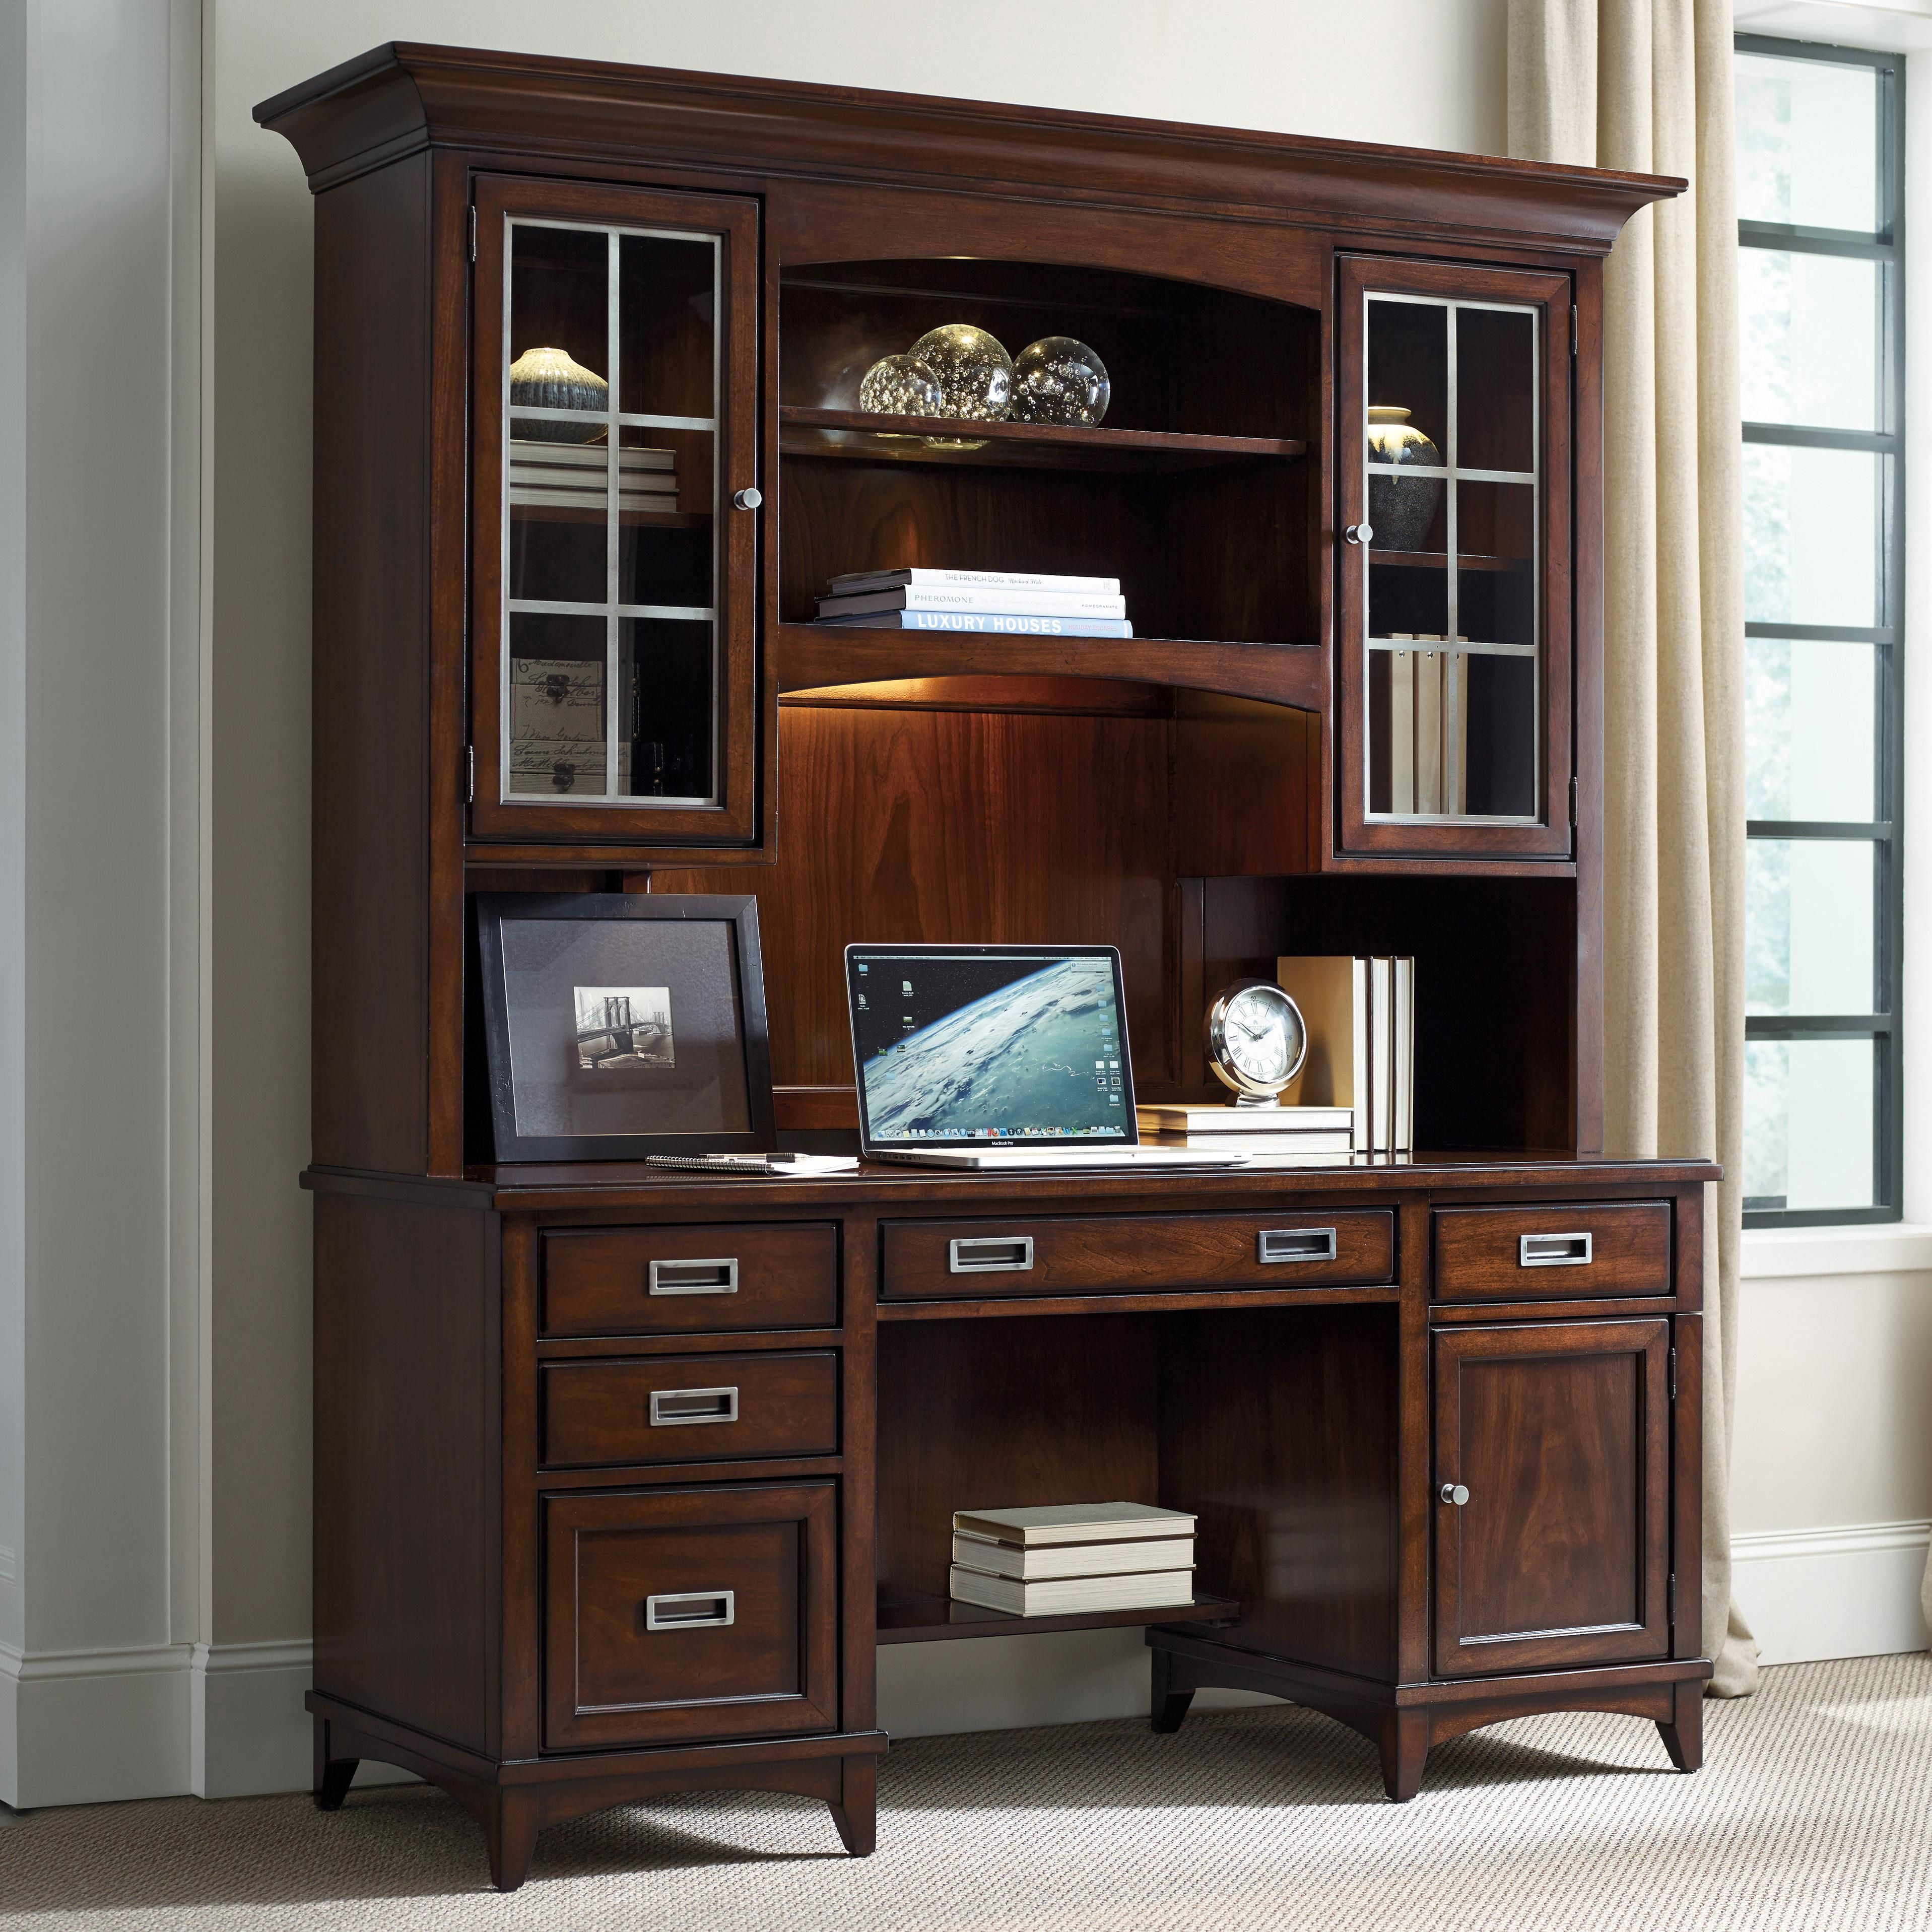 Shop For Hooker Furniture Latitude Computer Credenza/Desk Hutch, And Other  Home Office Cabinets Furniture. The Luxurious Latitude Collection Is  Crafted ...